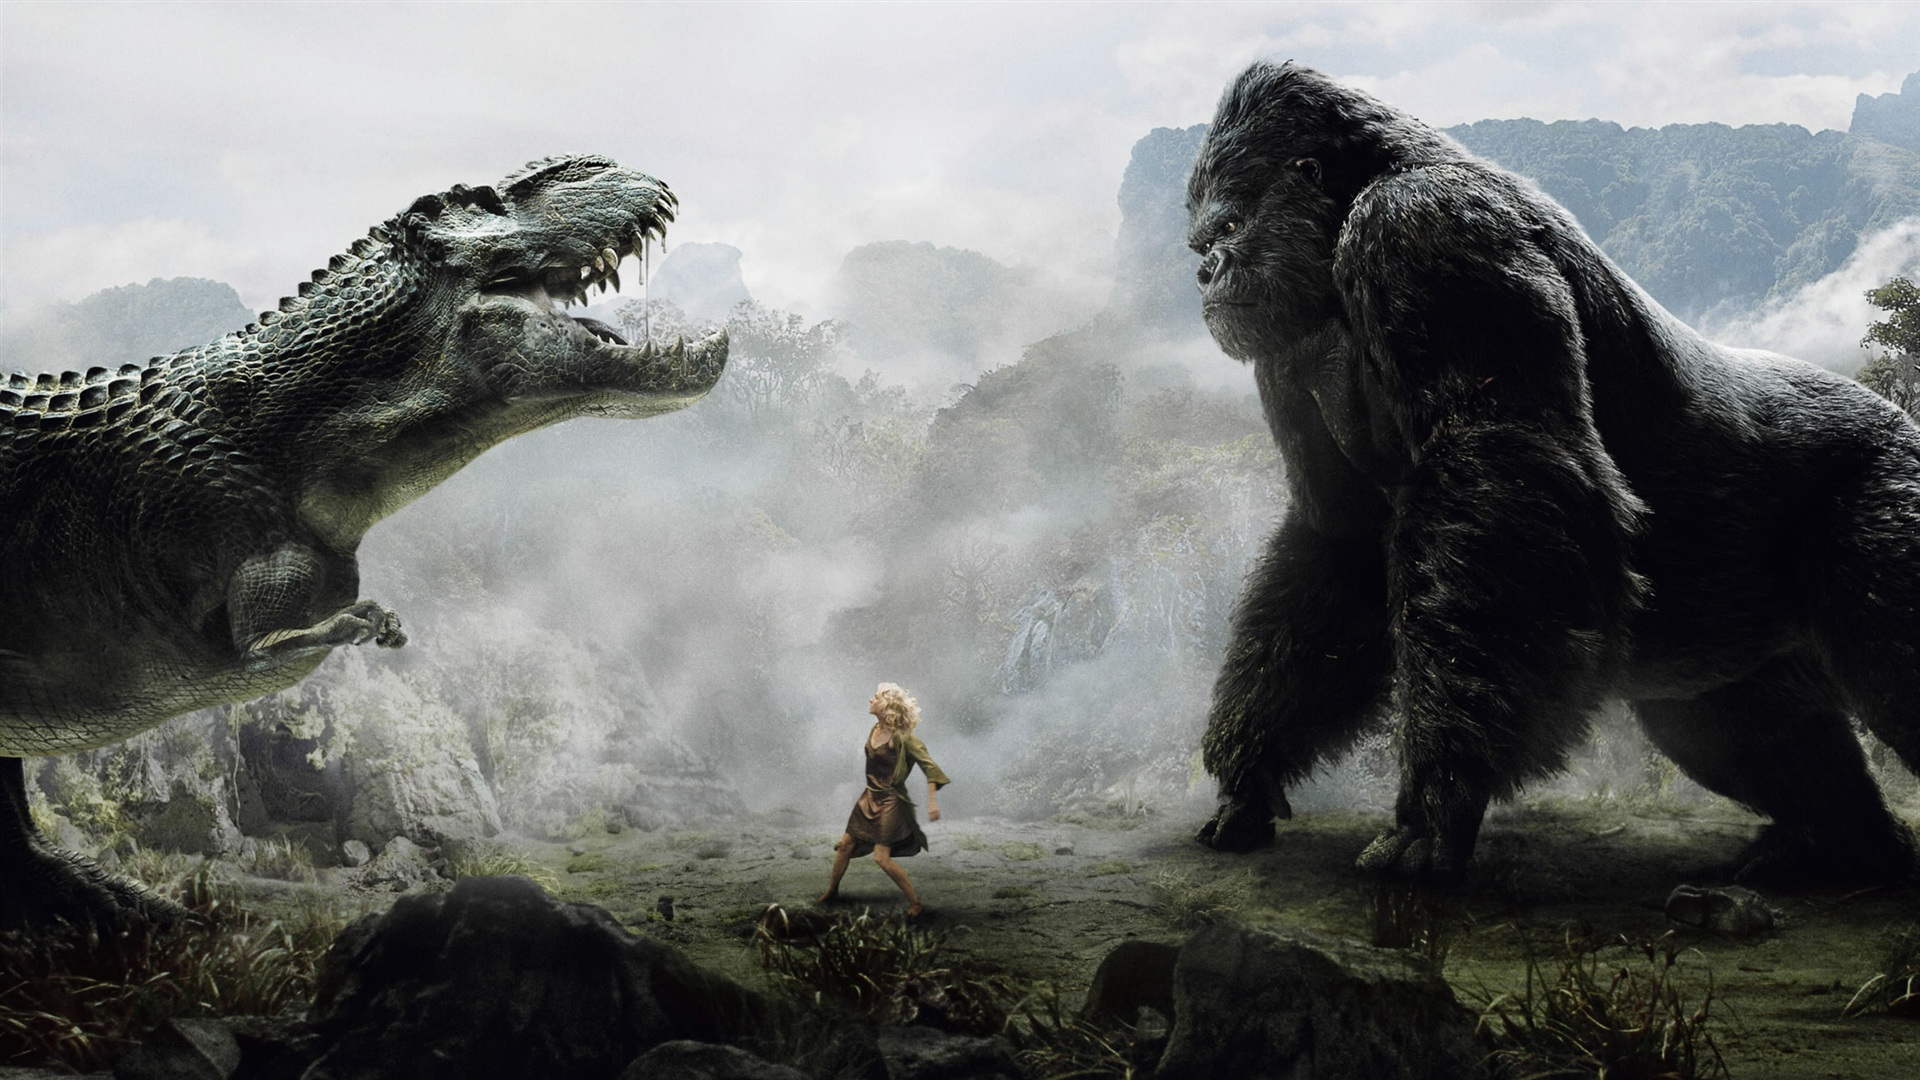 King kong hd 2560x1600 hd hintergrundbilder hd bild - King kong 2005 hd wallpapers ...